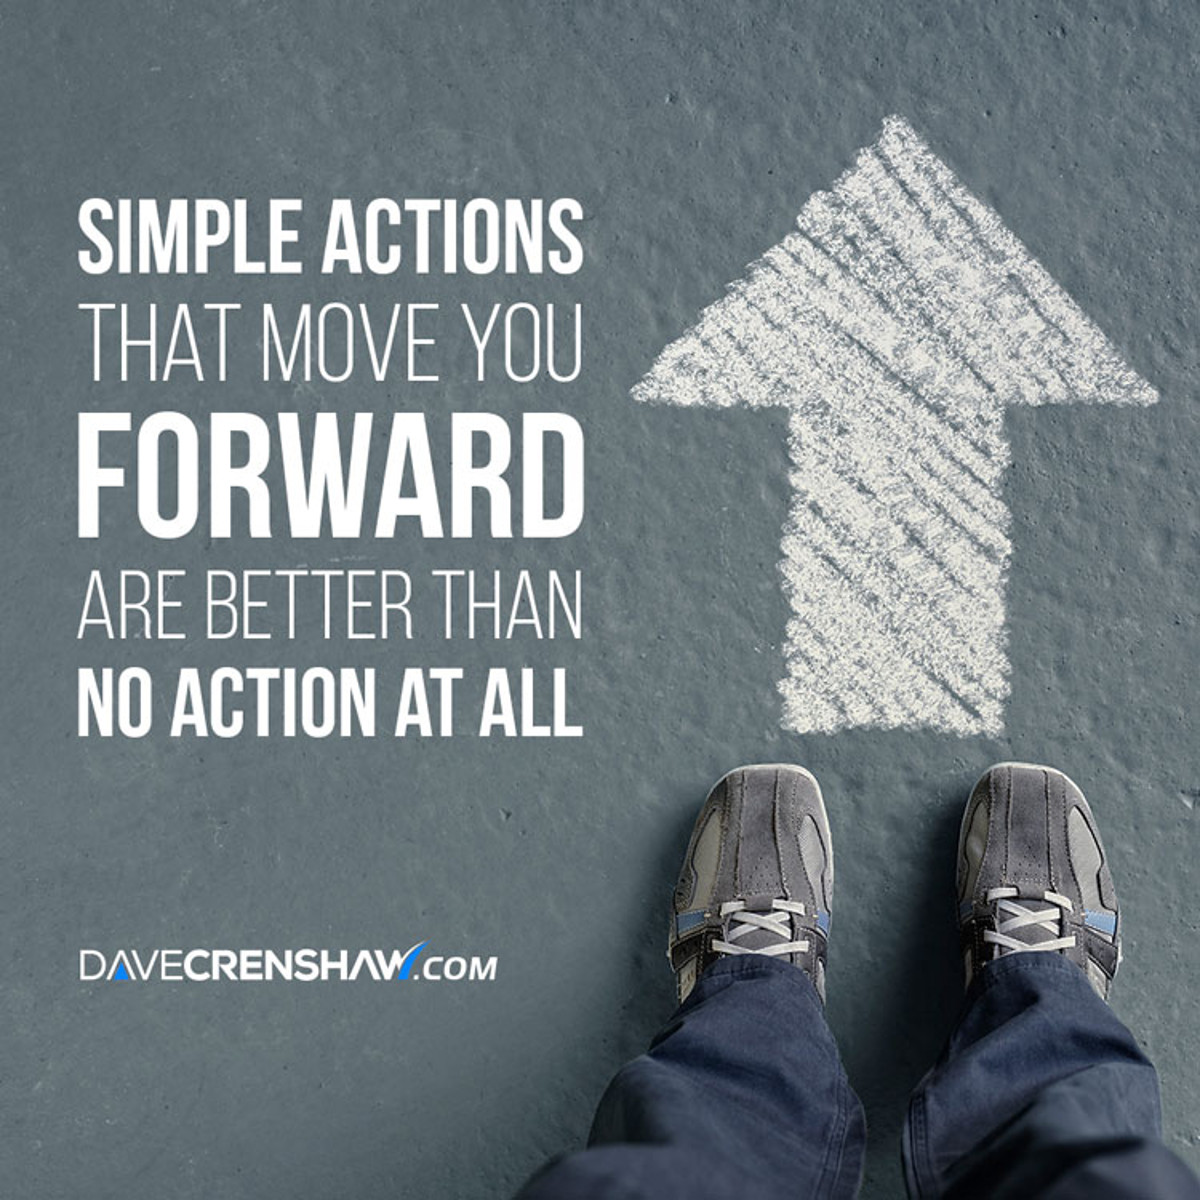 Simple actions that move you forward are better than no action at all